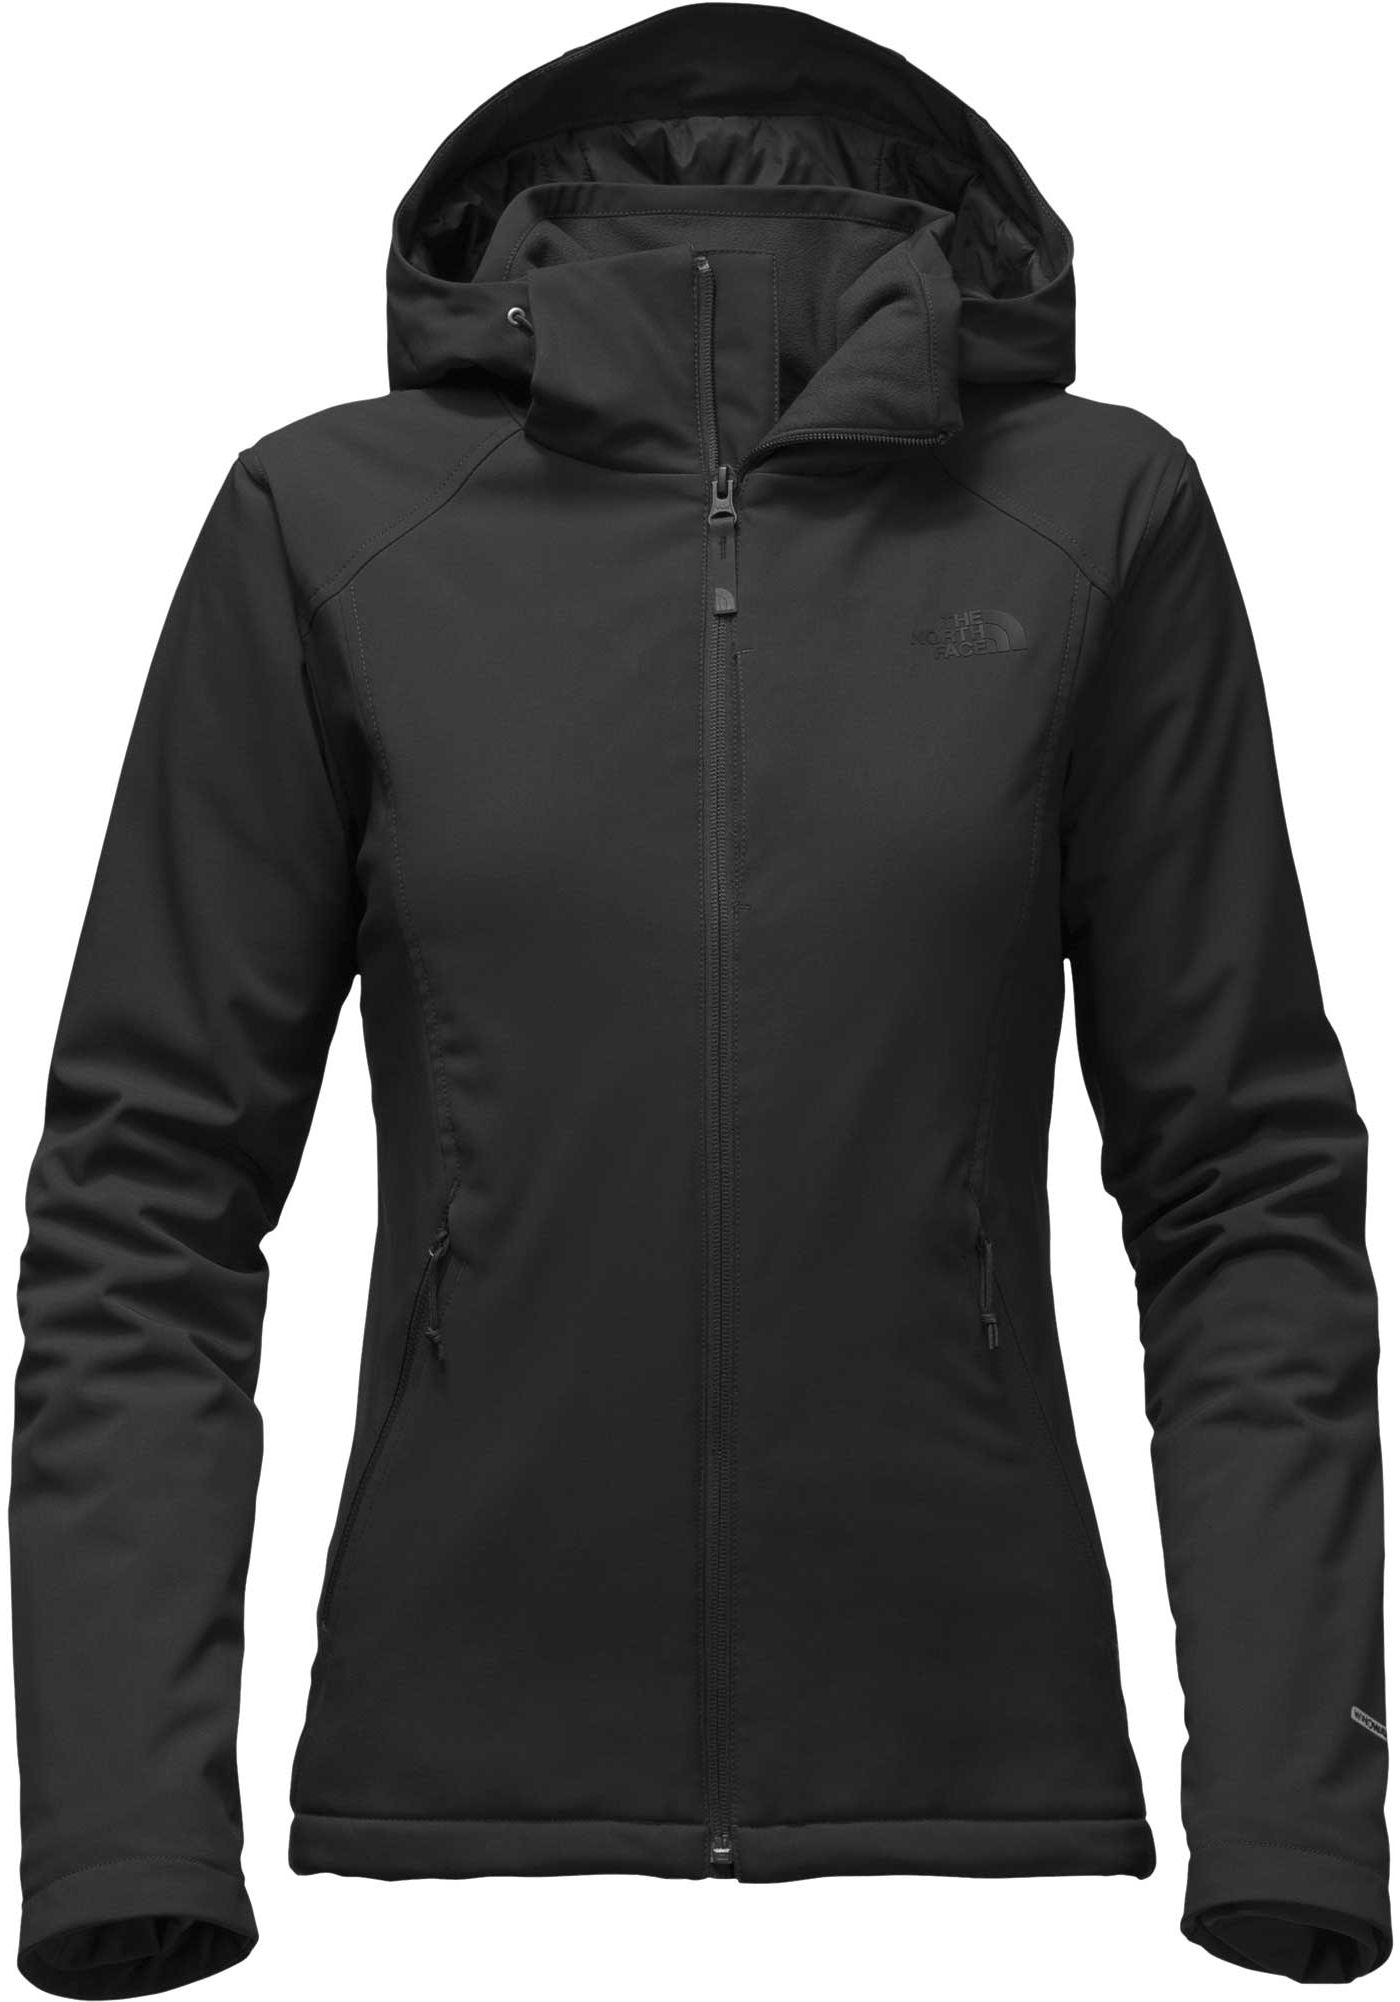 8e4286921 The North Face Women's Apex Elevation Insulated Jacket